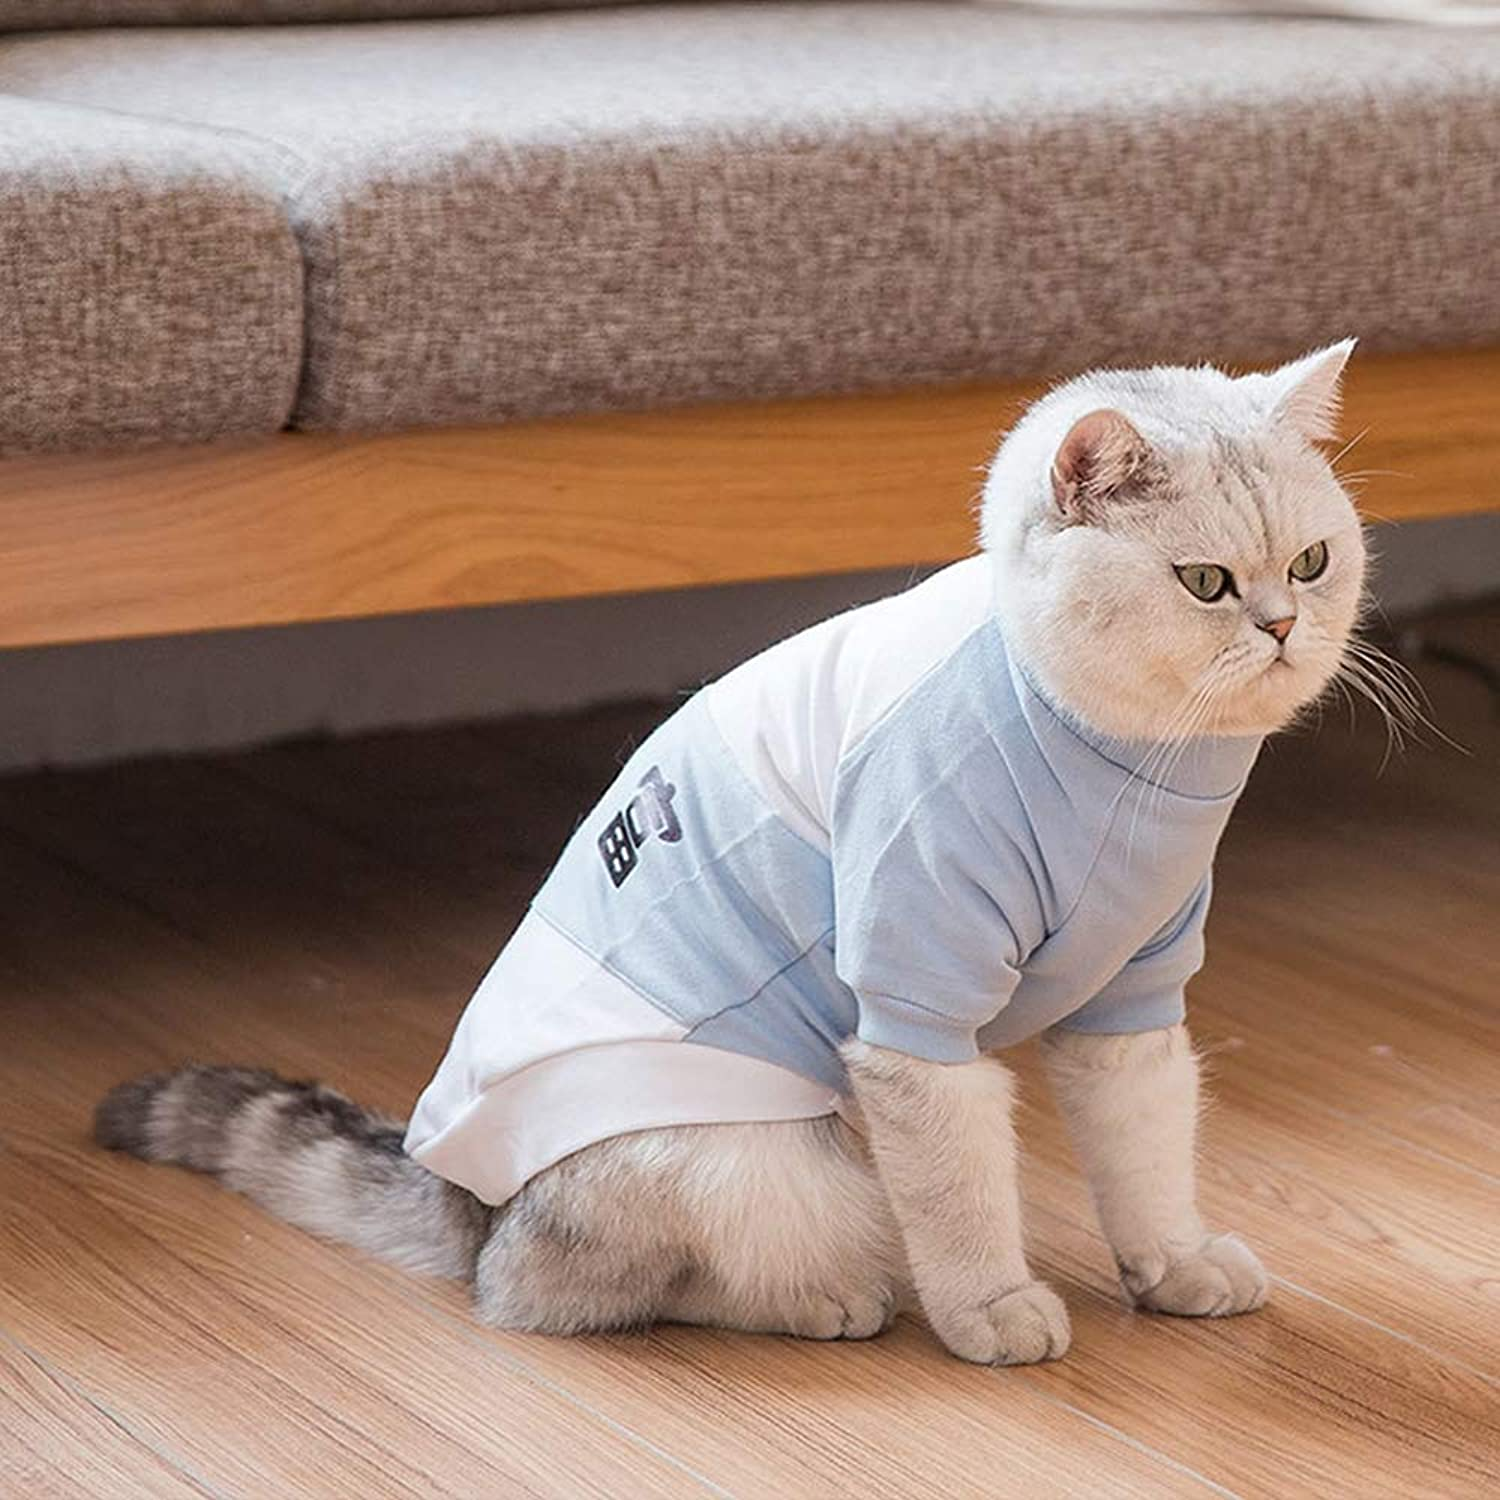 Cats Coat Clothes, for Pet Puppy Tee Shirts Dogs Costumes Cat Tank Top Vest Dog Shirts Pet Shirts Dogs TShirt Puppy Dogs,bluee,S